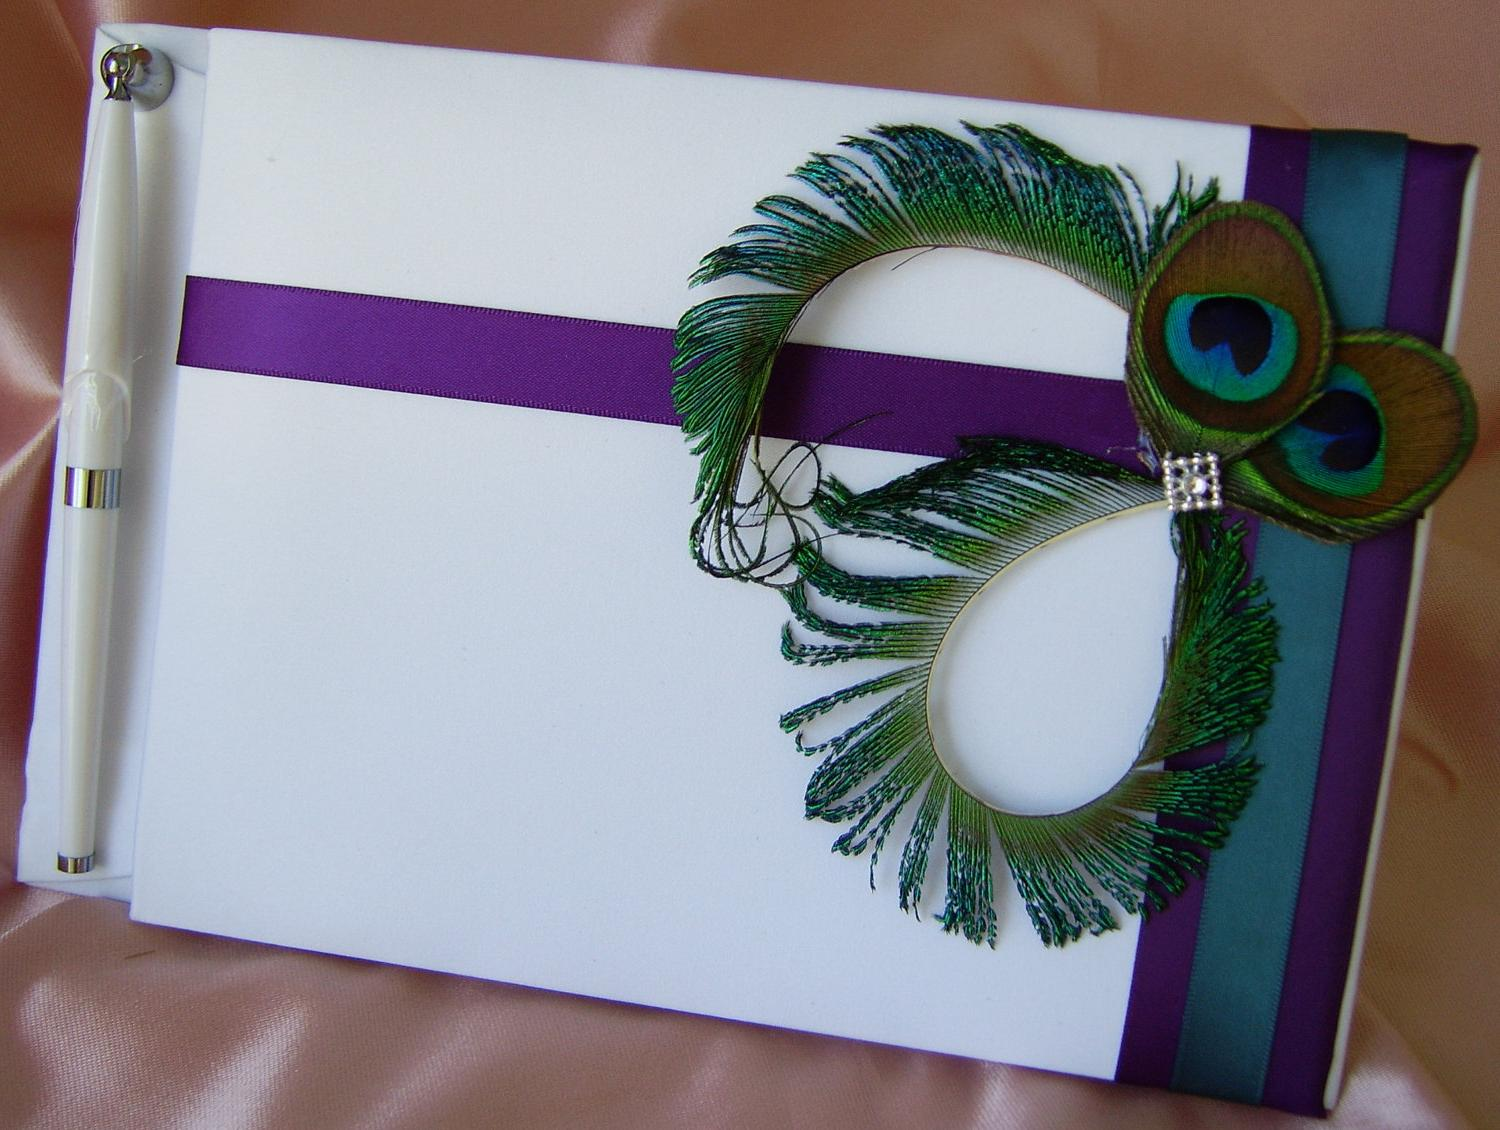 Peacock Feather Wedding Guest Book and pen, Deep purple and teal wedding